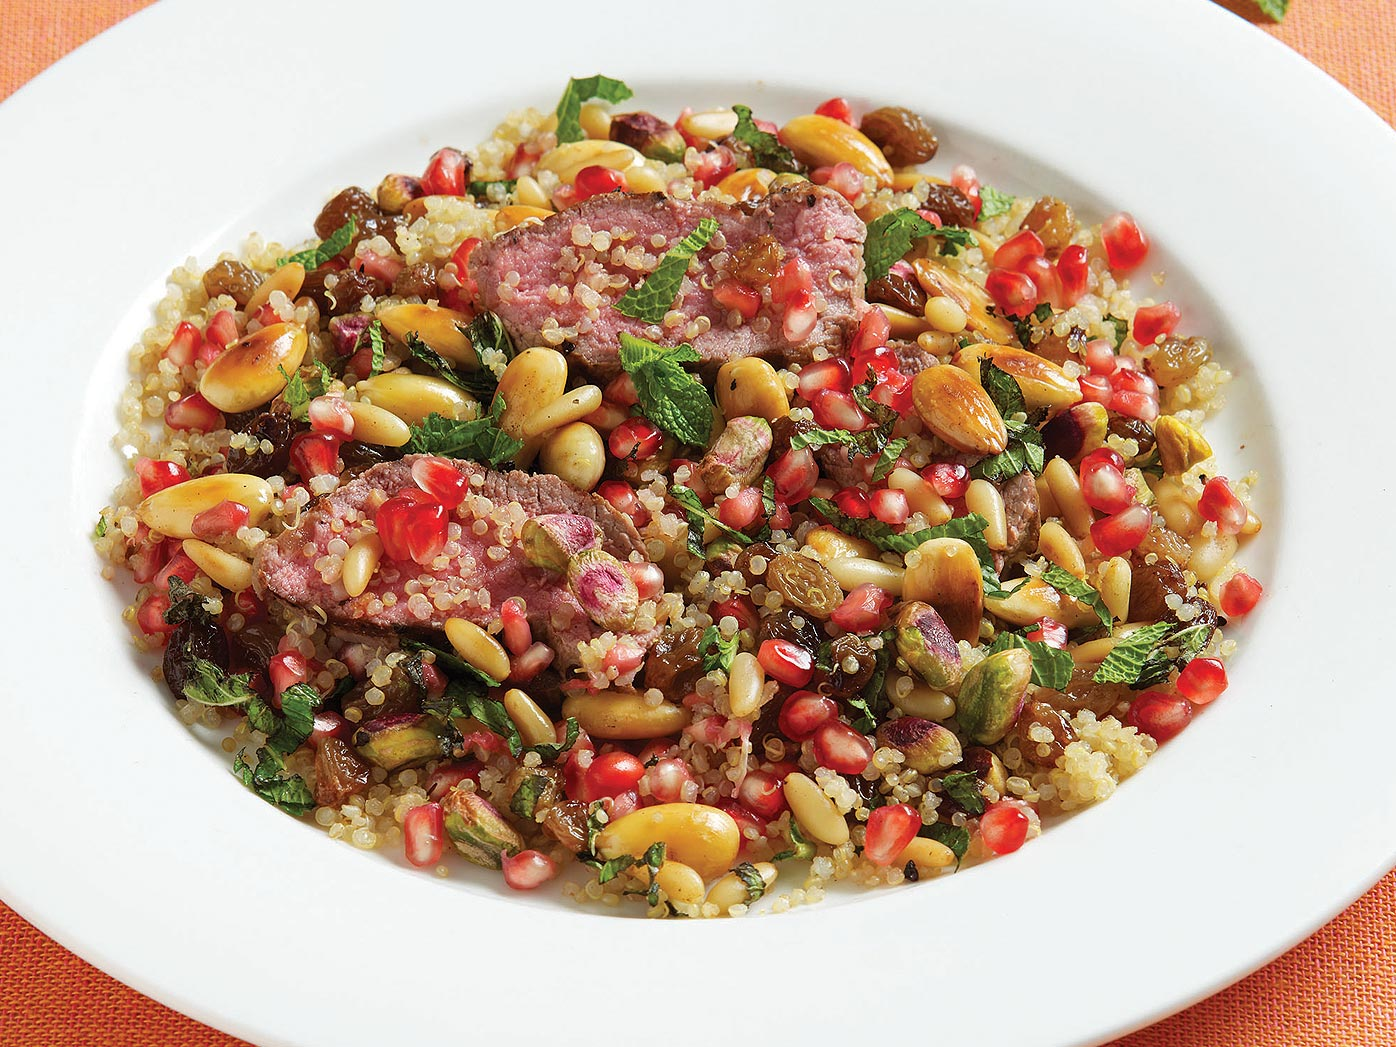 Rena Patten's lamb with quinoa and nuts